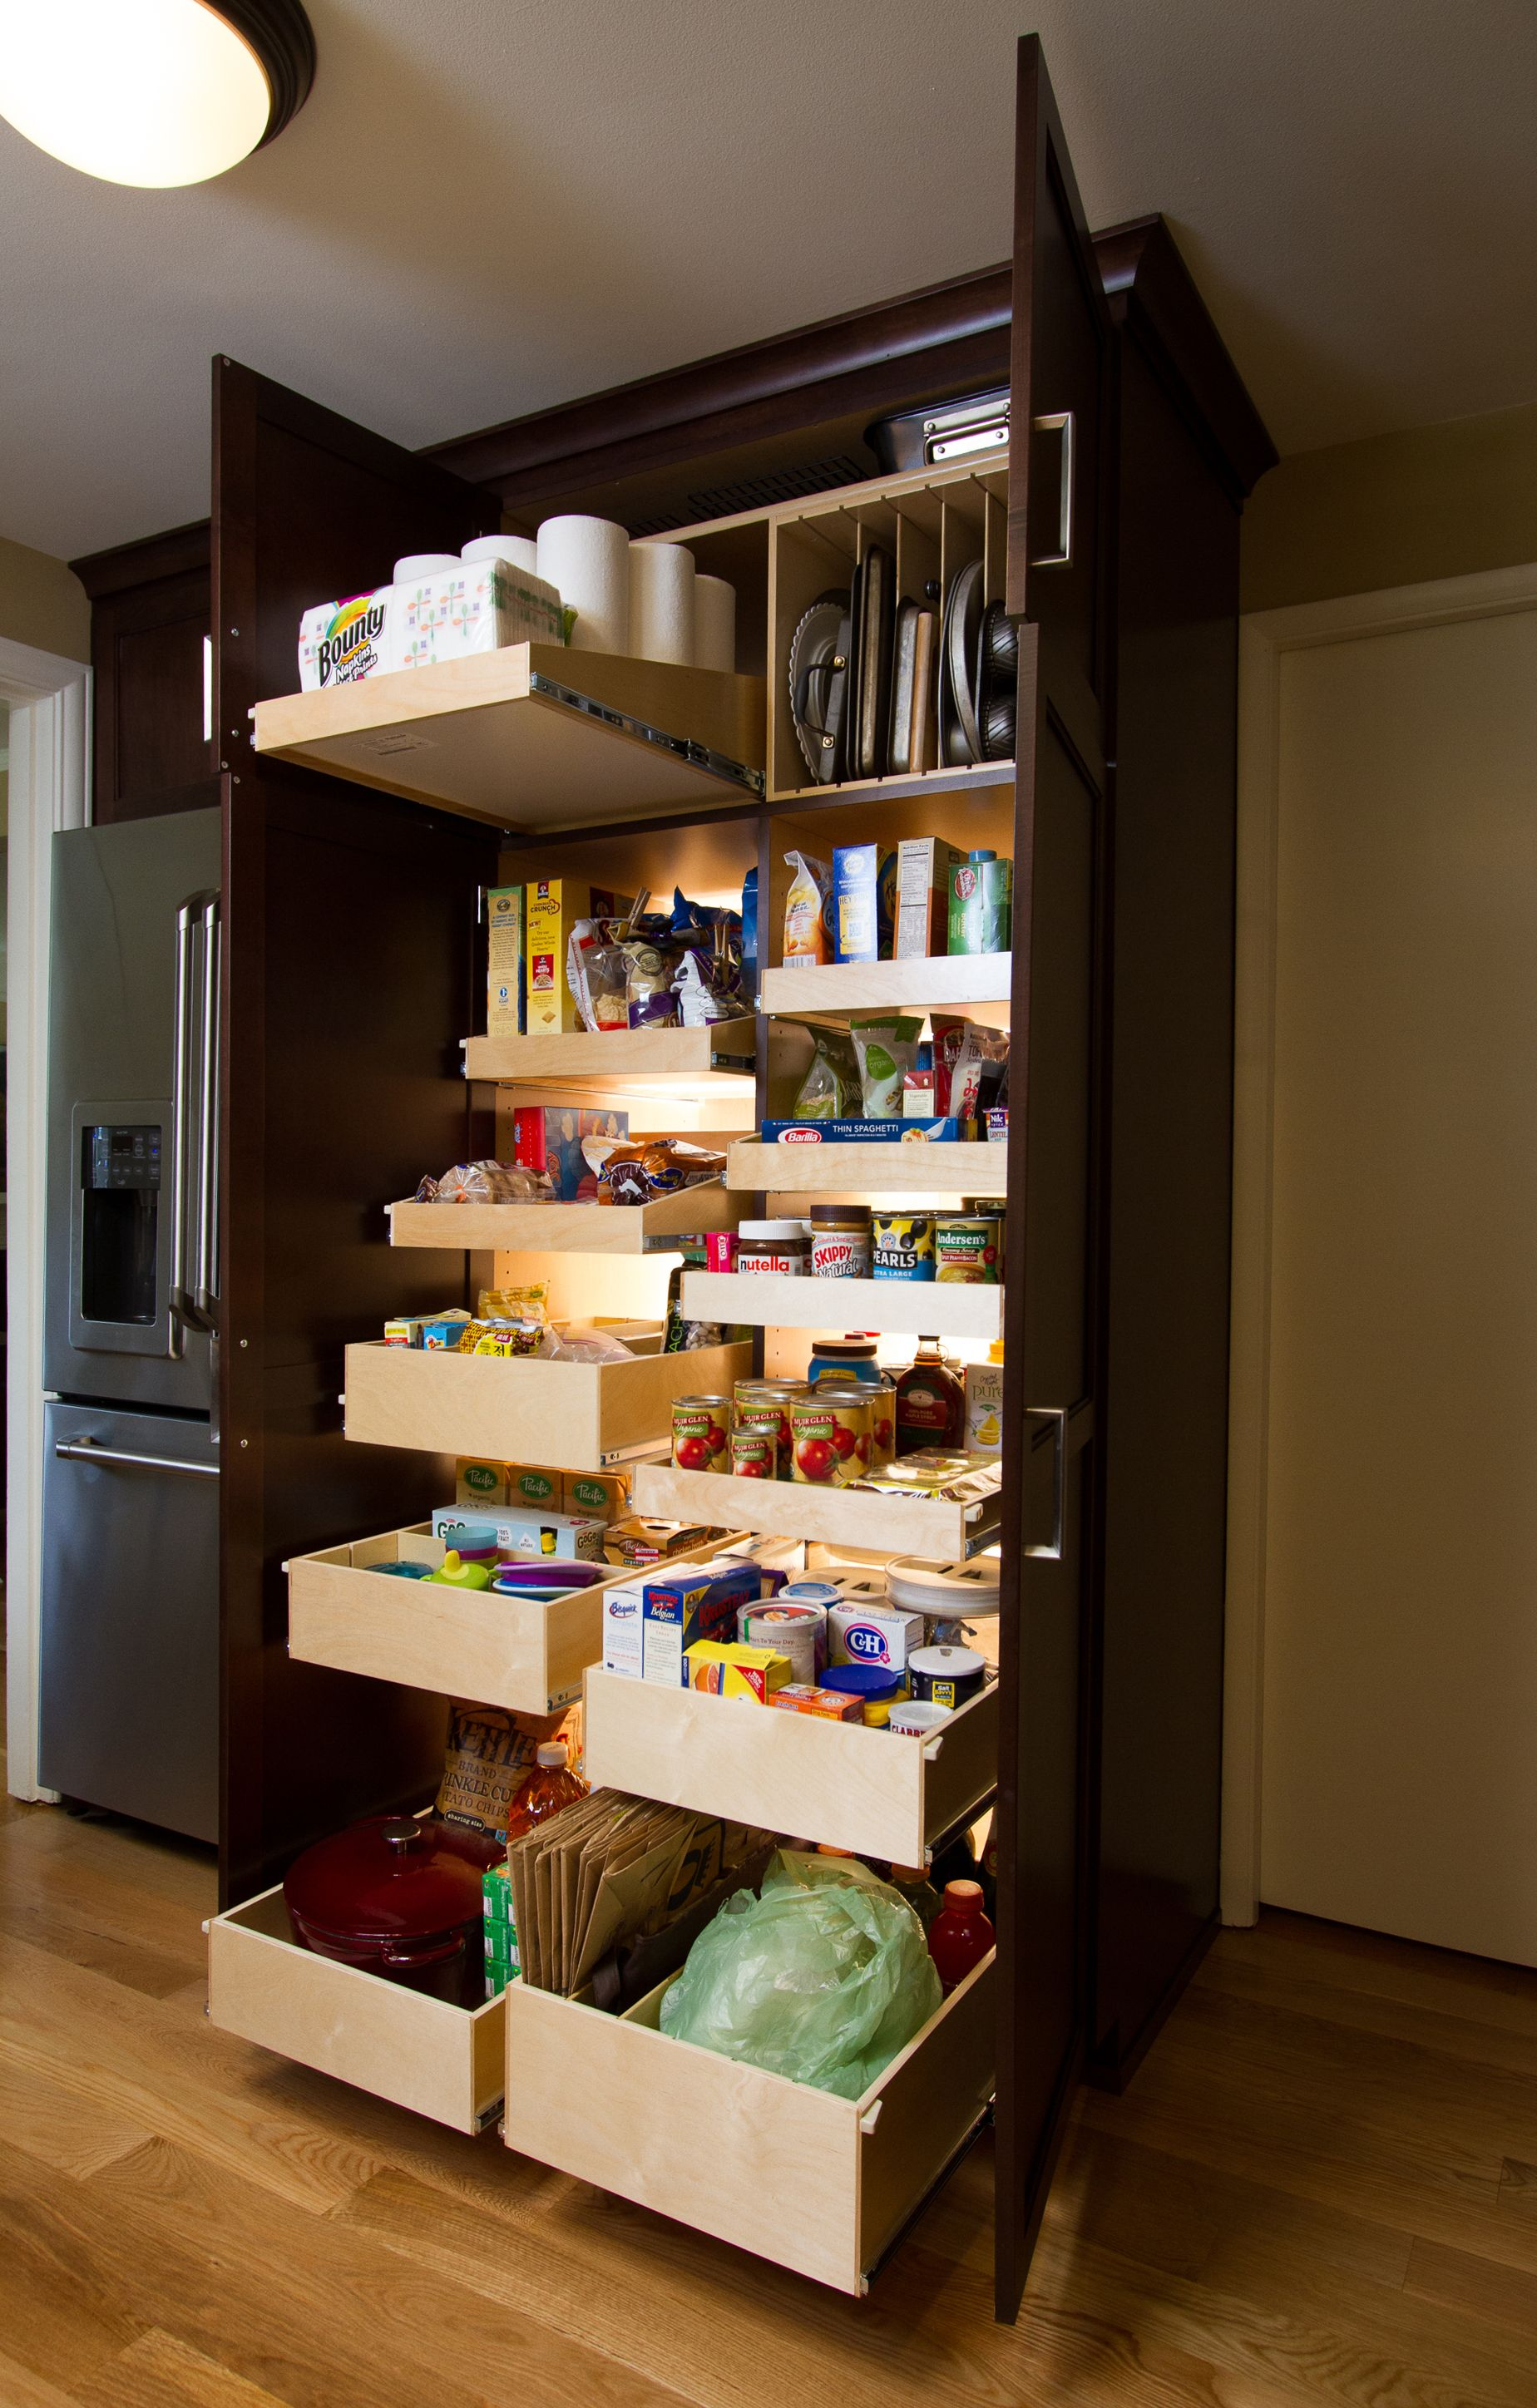 Best Kitchen Gallery: Sneaky Storage Spaces That Will Declutter Your Kitchen Pantry of Custom Kitchen Pantry Cabinets on rachelxblog.com